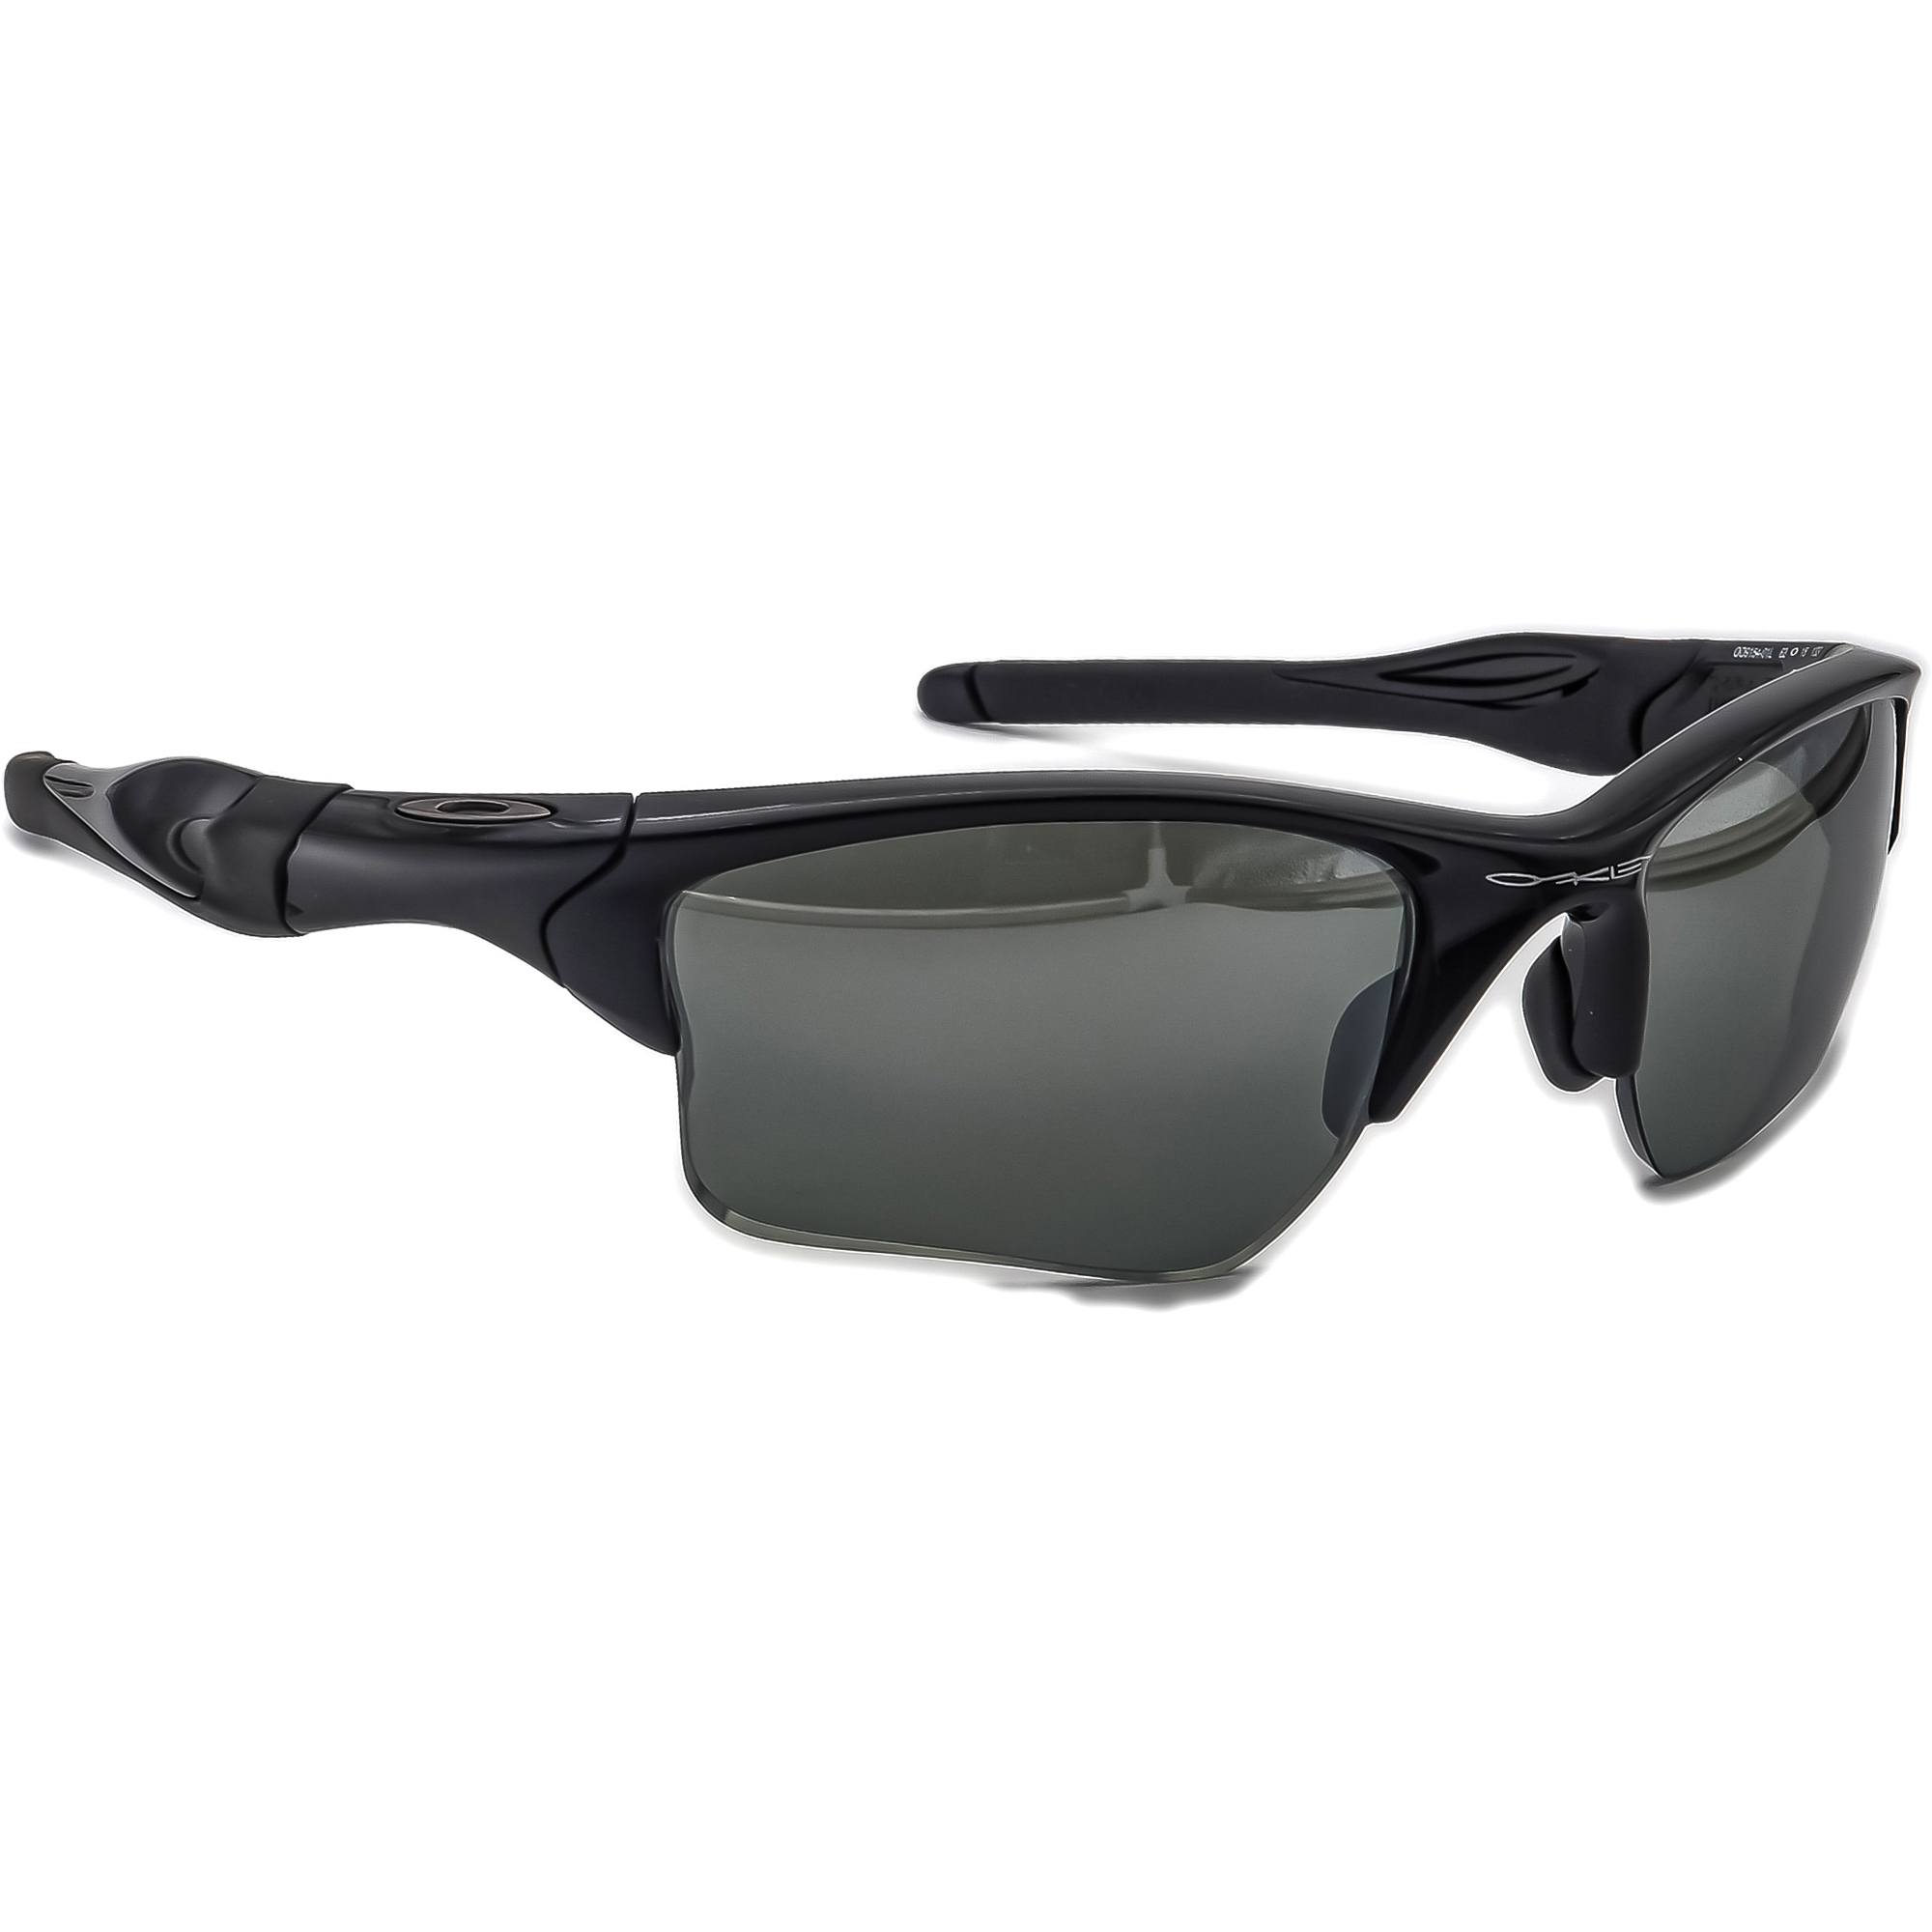 Oakley OO9154-01L Half Jacket 2.0  Sunglasses Frame Only